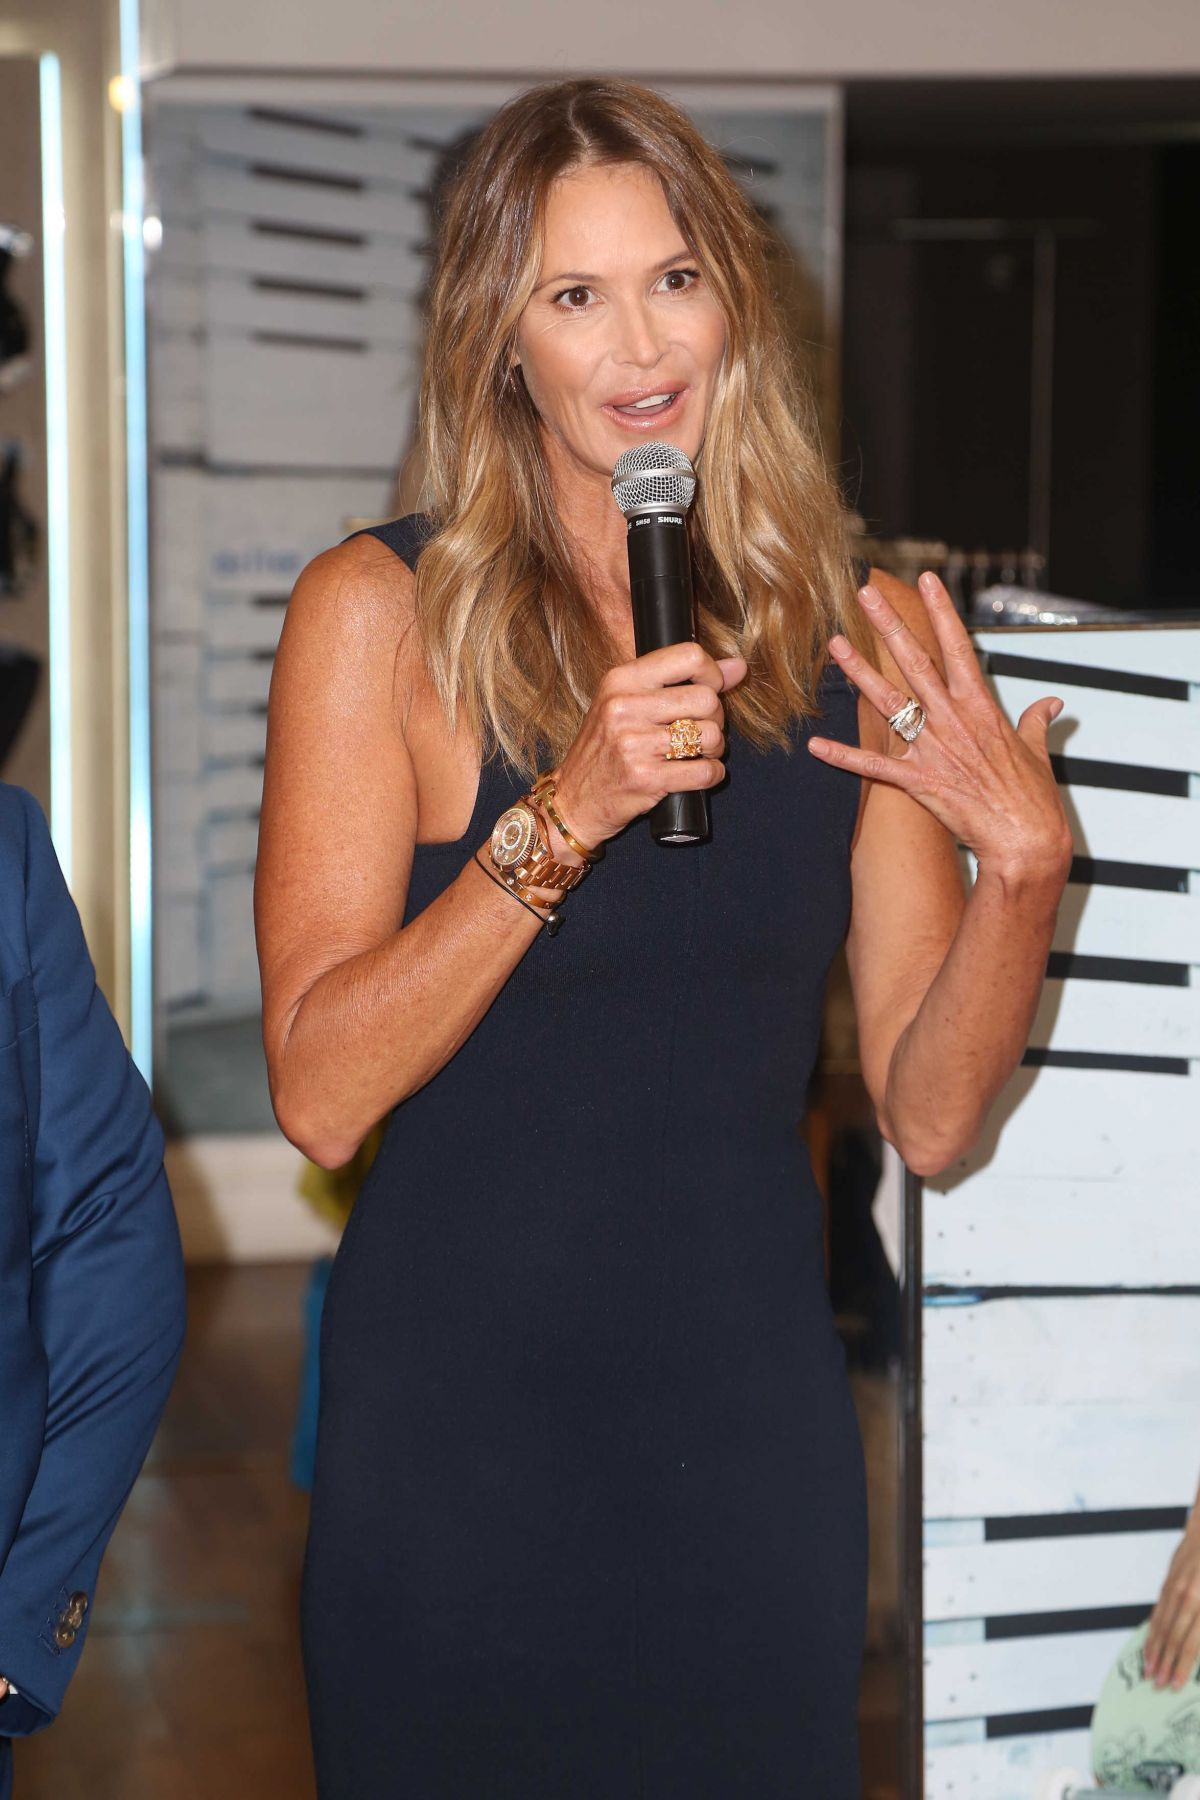 ELLE MACPHERSON at Launch of New Lingerie Line in Sydney